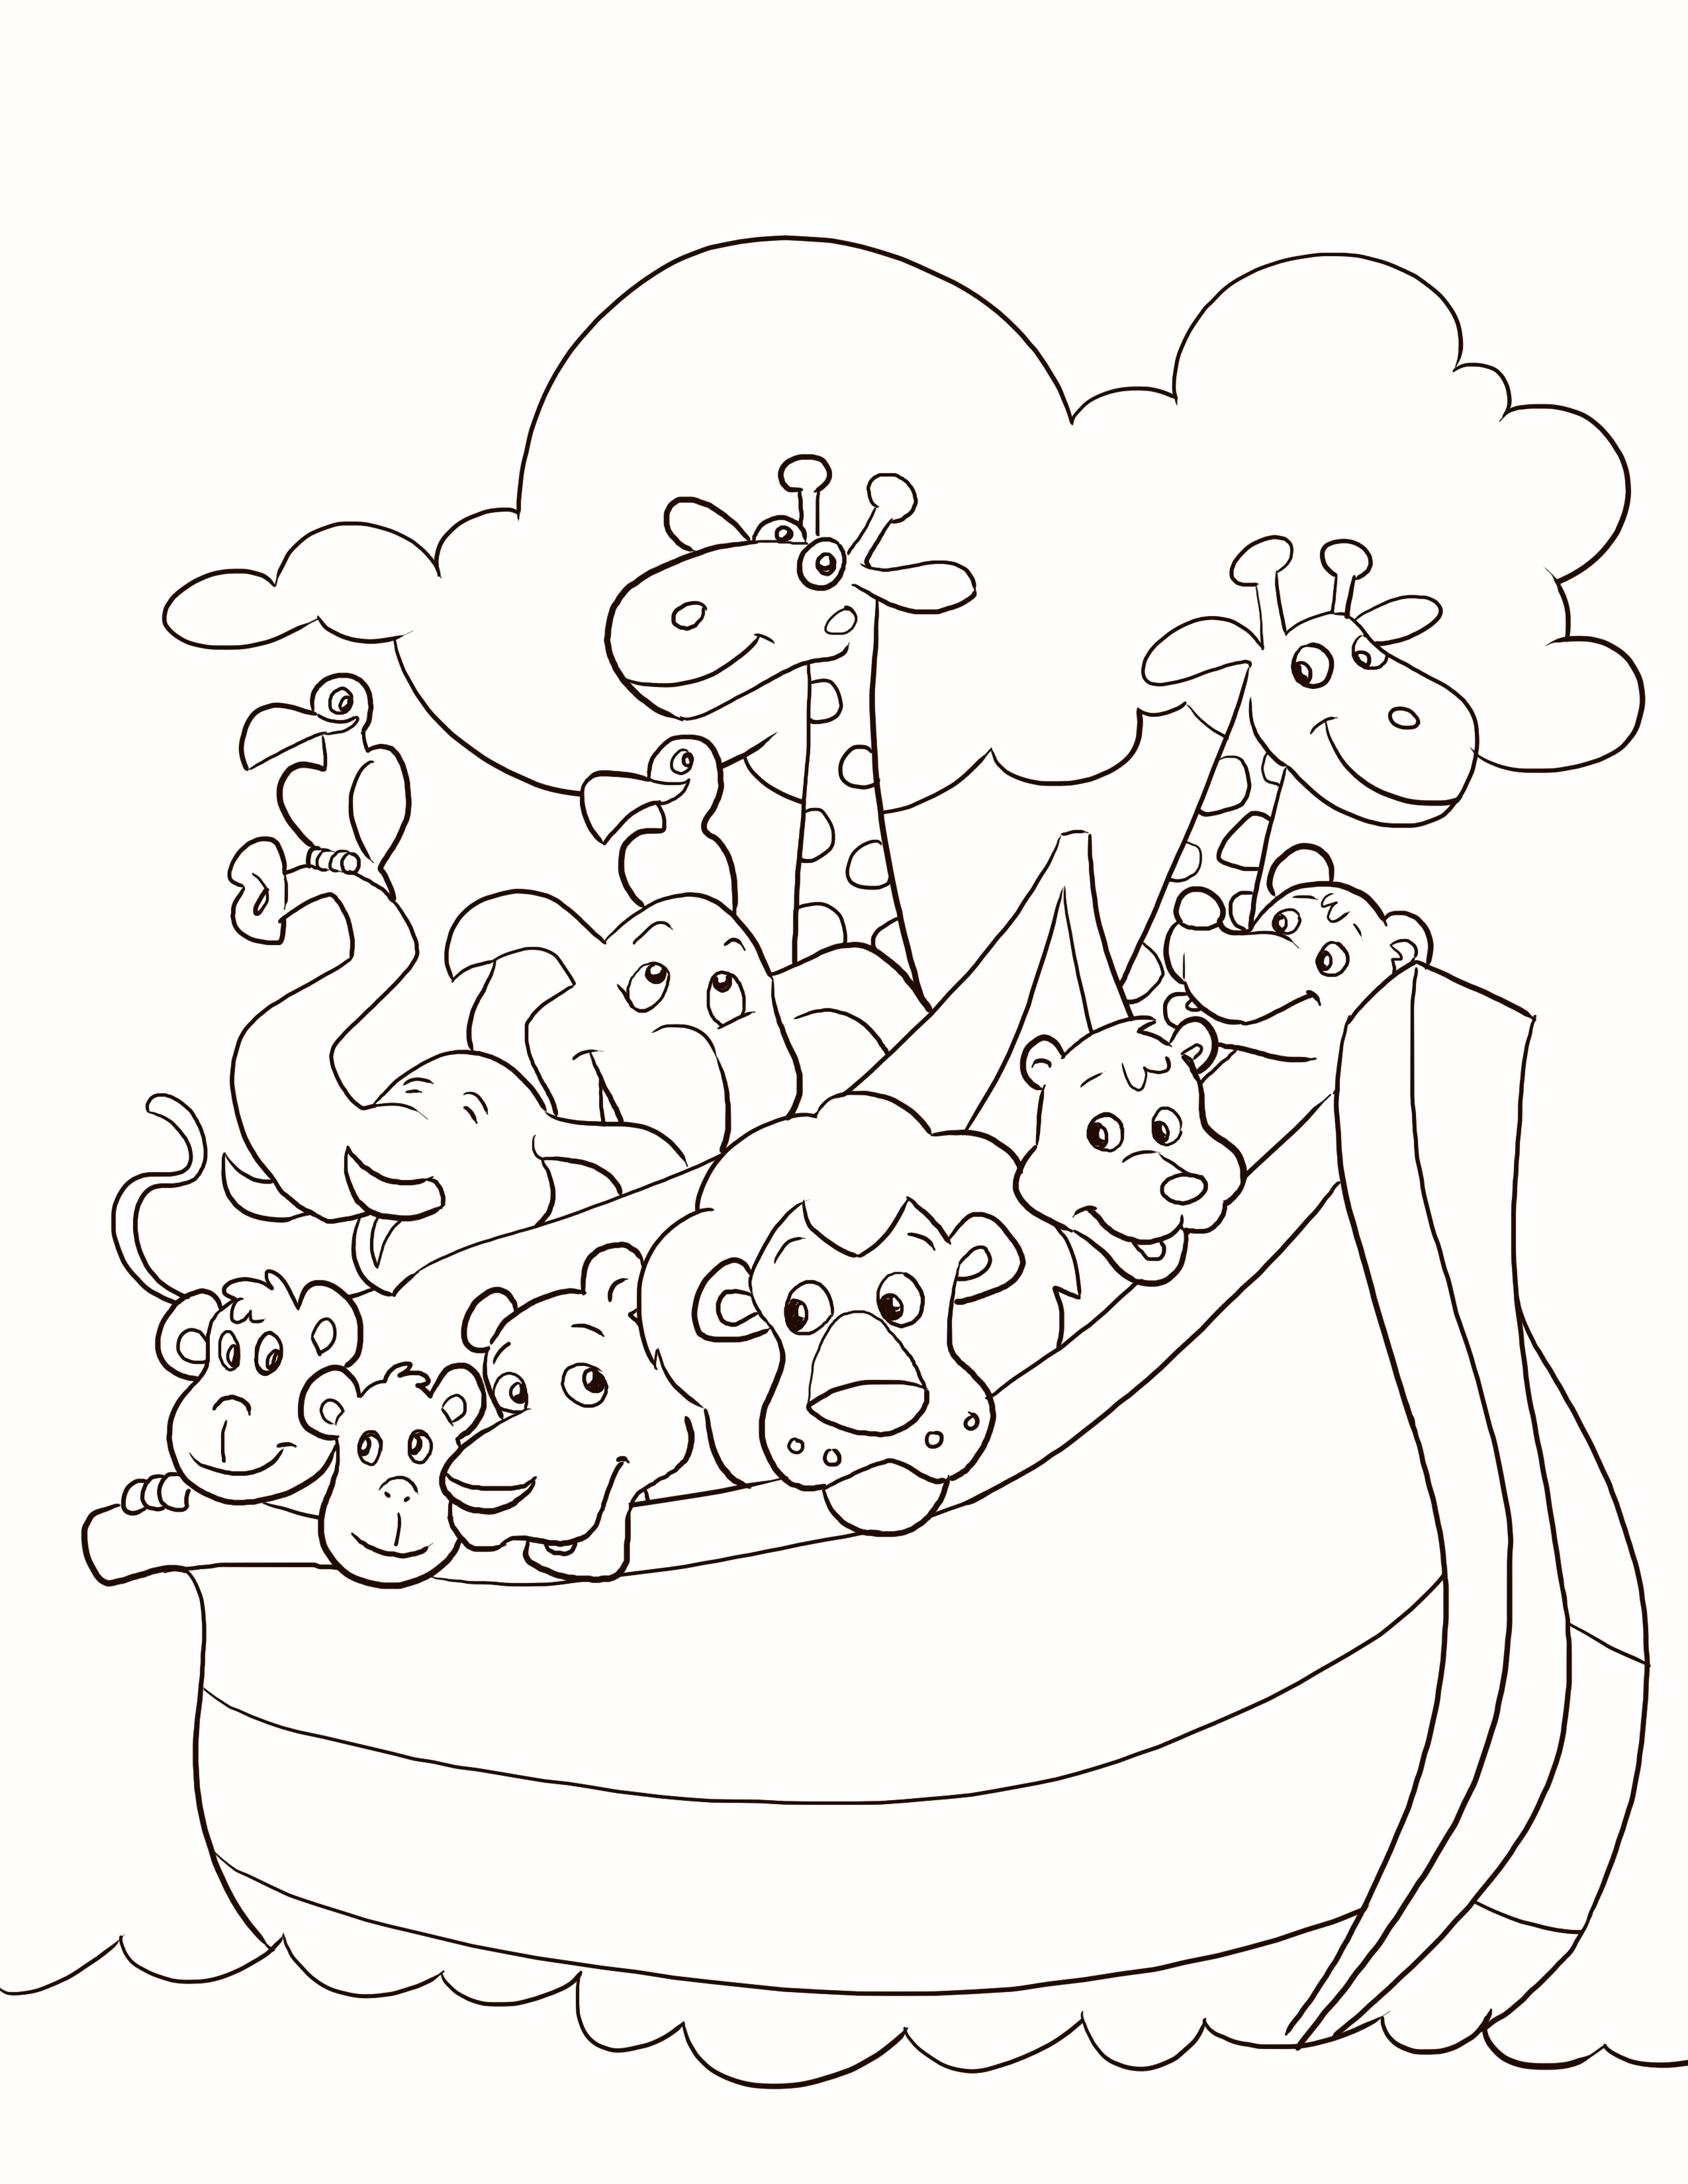 20 Children's Sunday School Coloring Pages Collection - Coloring Sheets